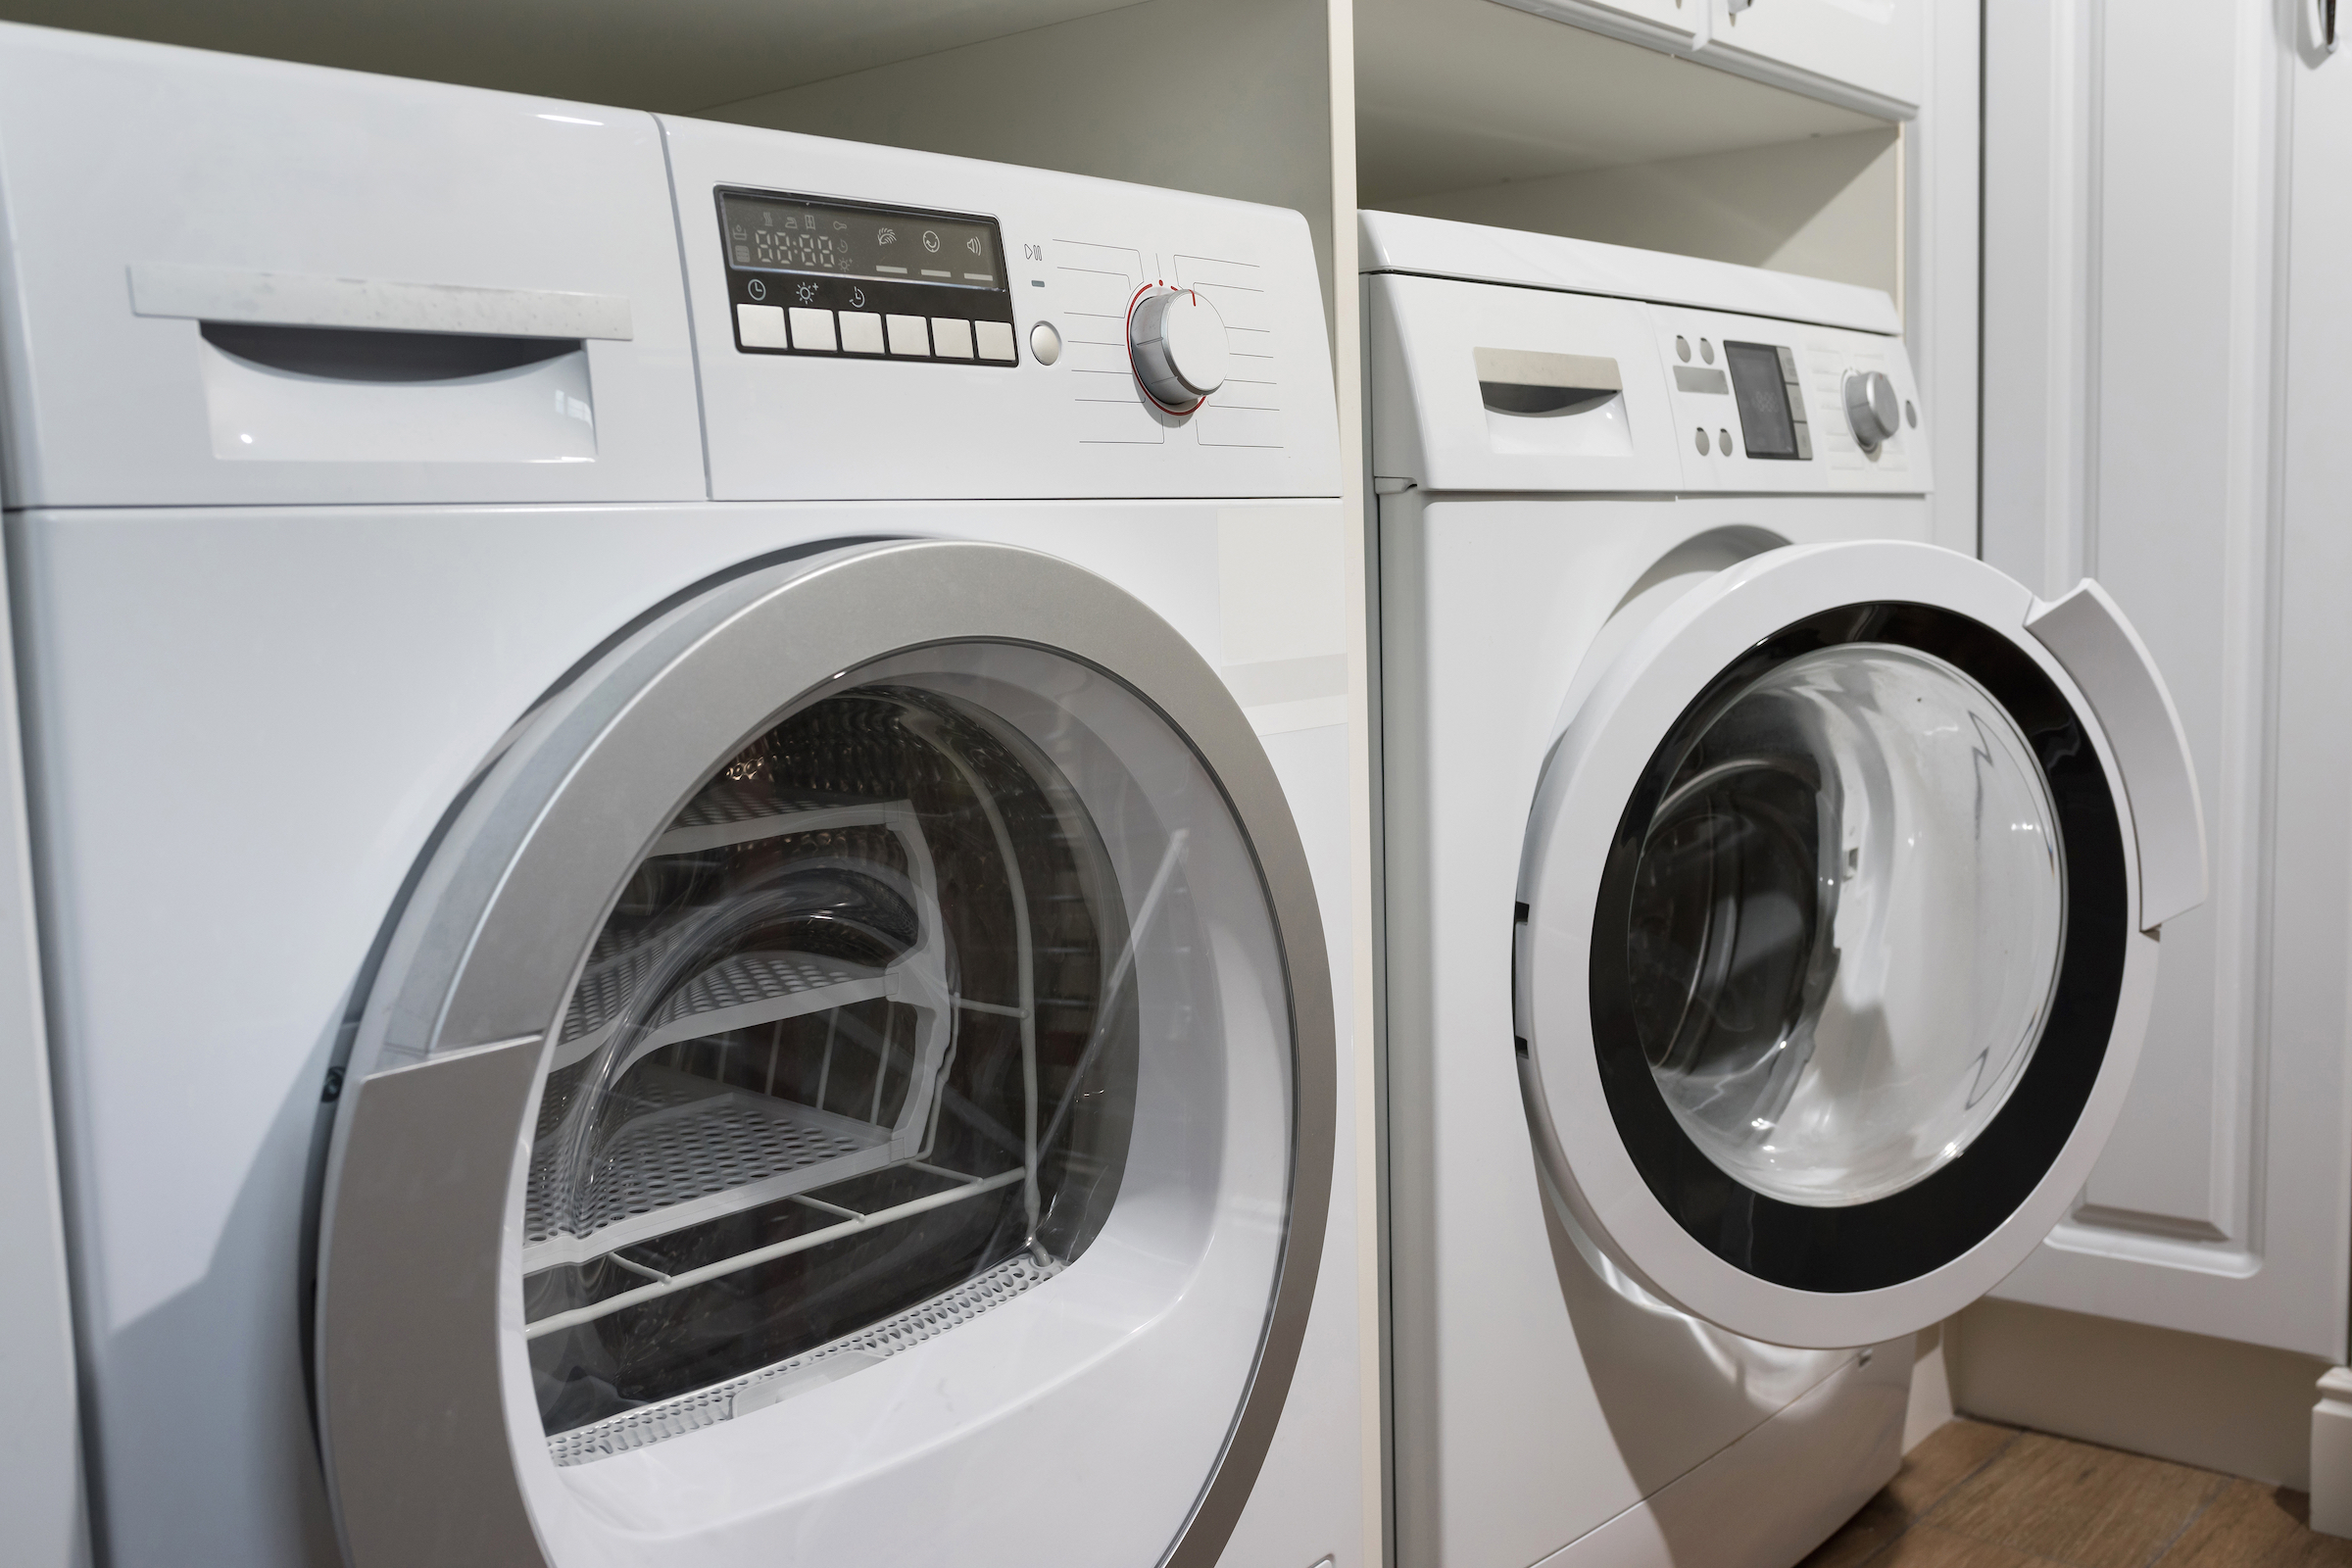 If your dryer is making noise and you need professional support, give us a call.